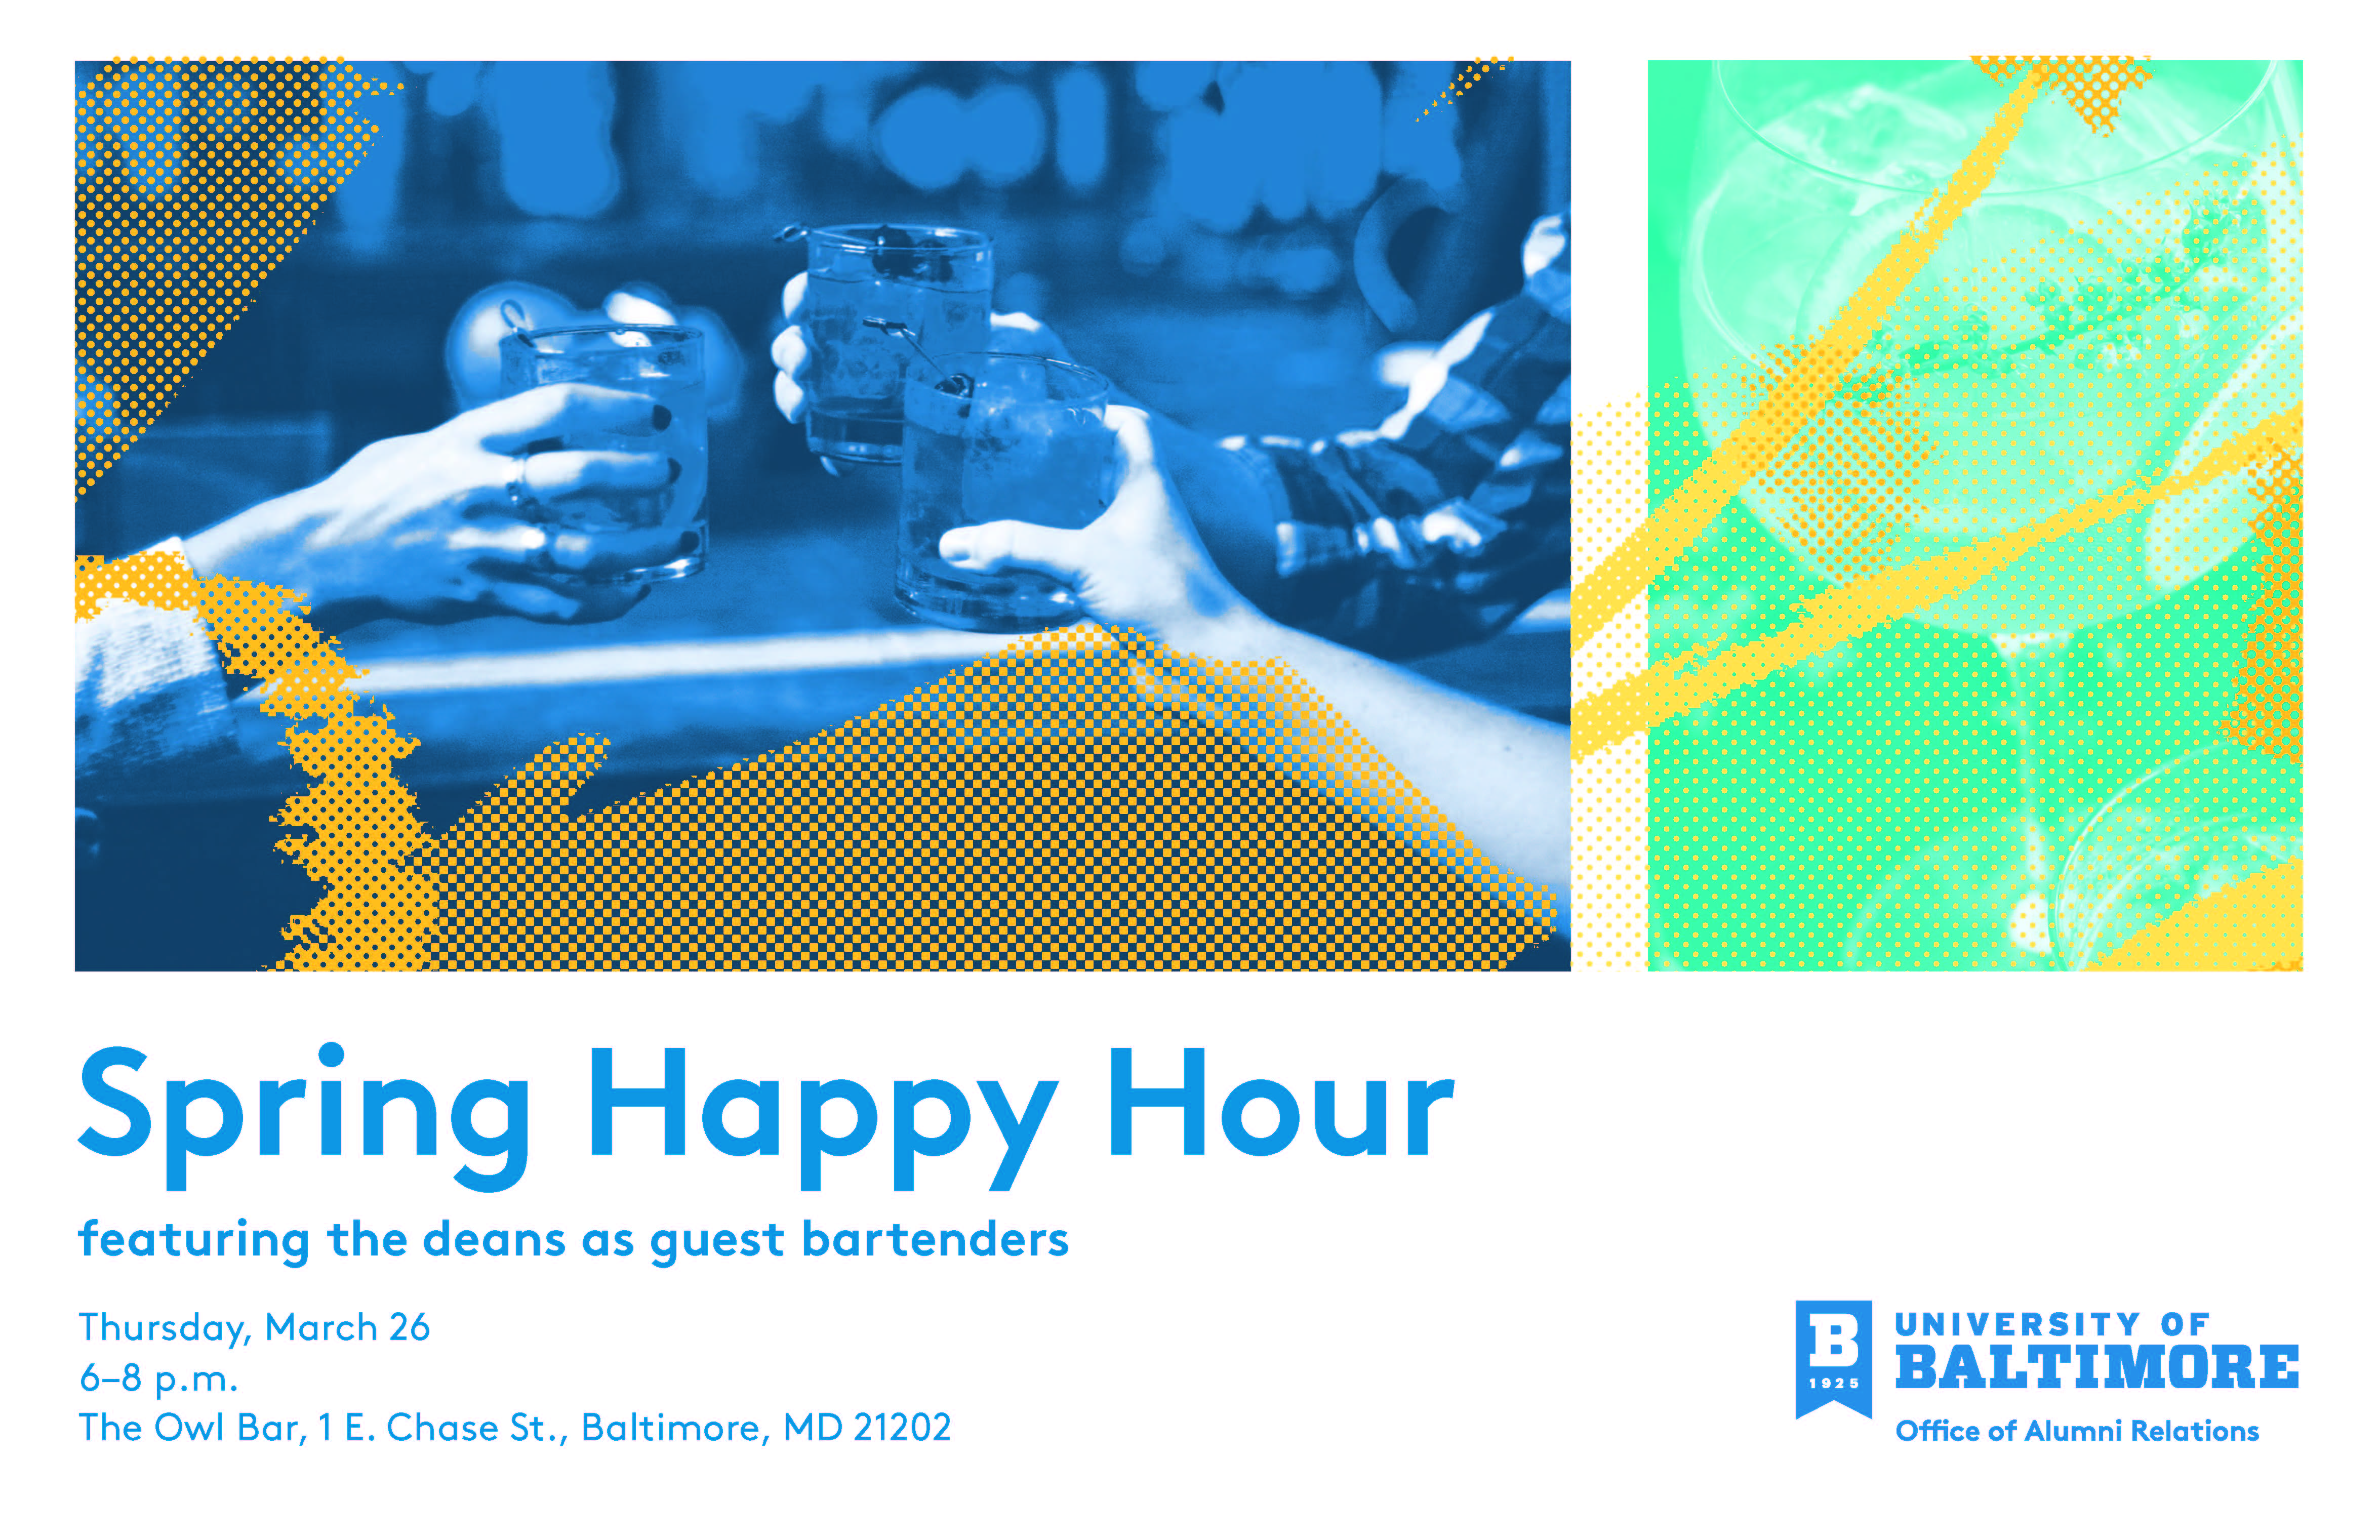 Spring Happy Hour